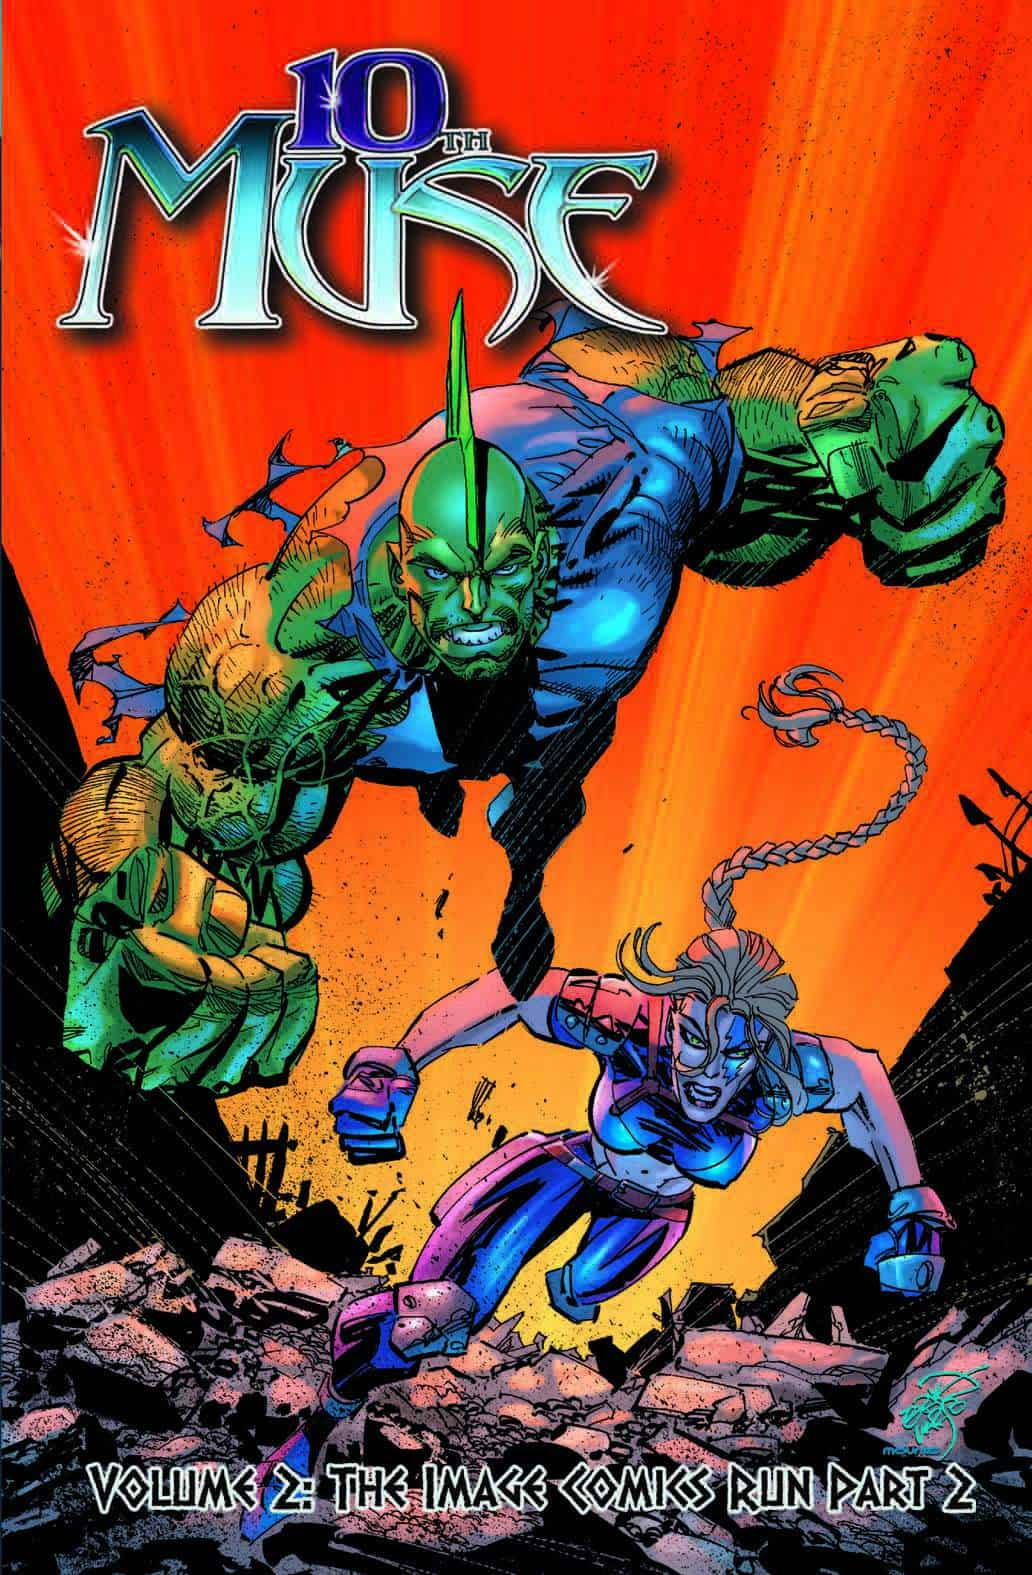 10th-Muse-Vol-2-the-Image-Comics-Run-Part-2-Cover